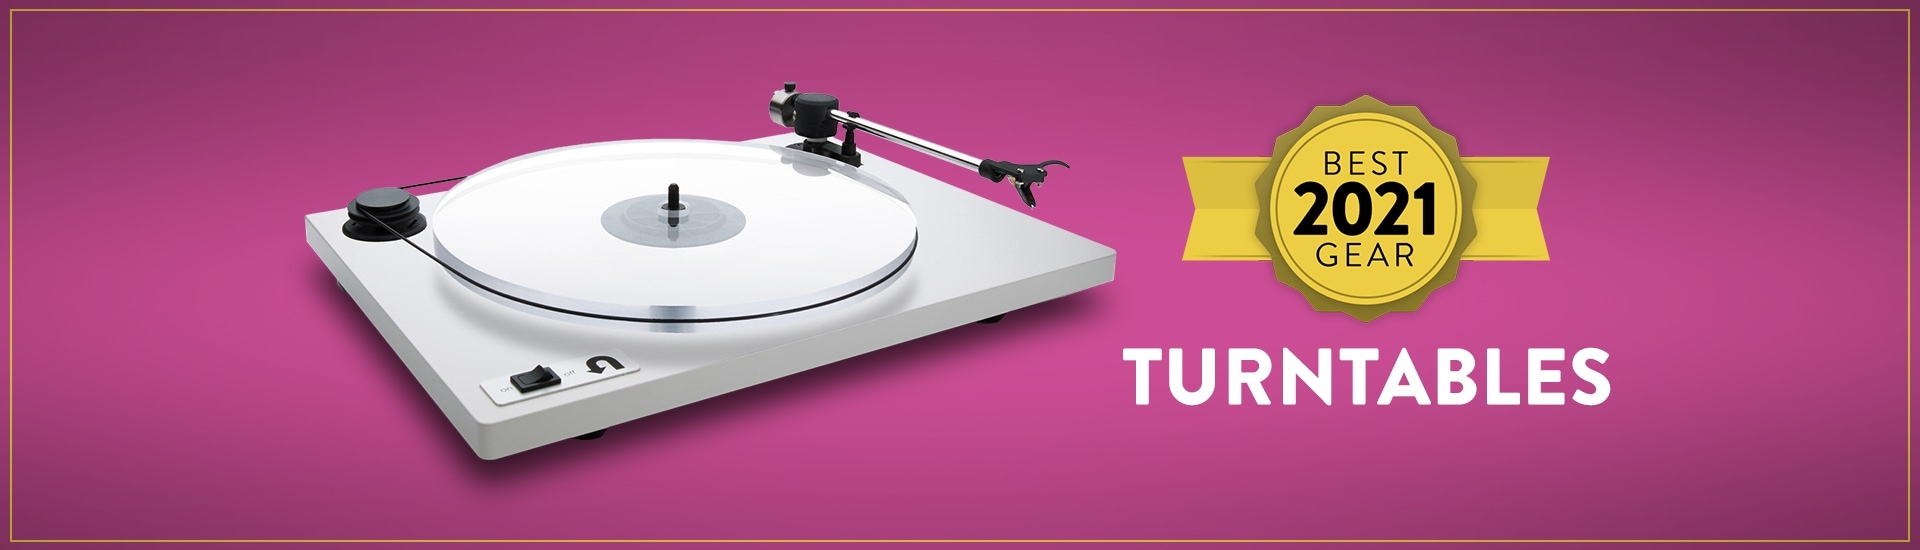 The Best Turntables of 2021